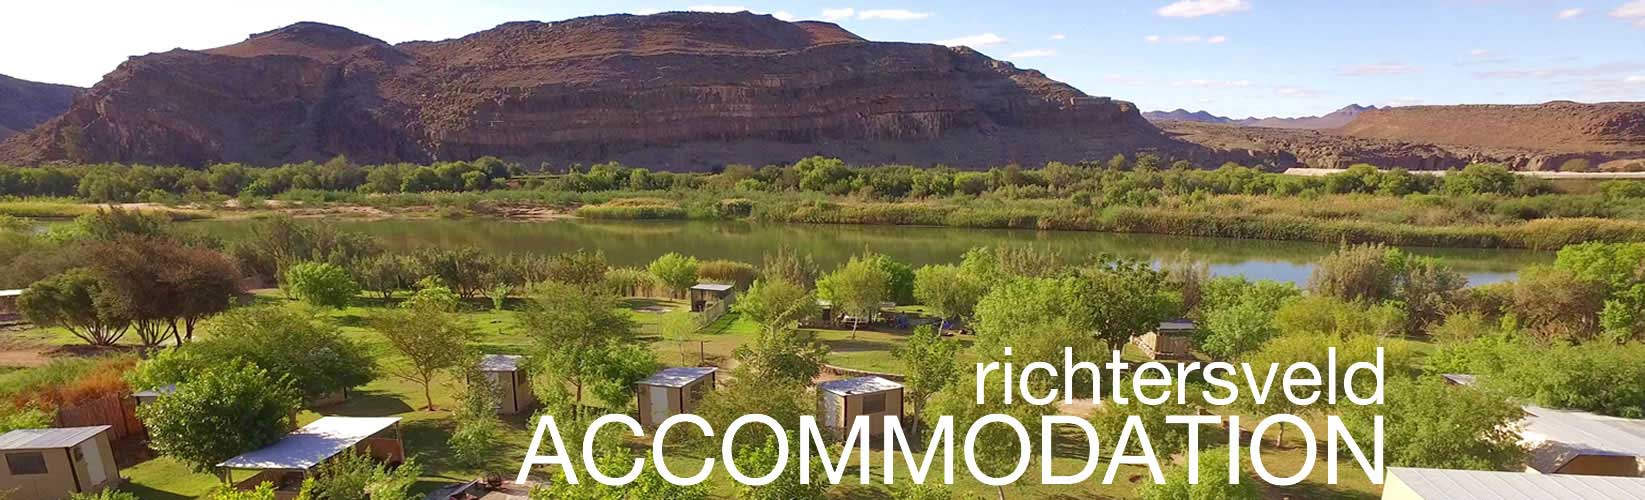 4 Day Orange River Adventure